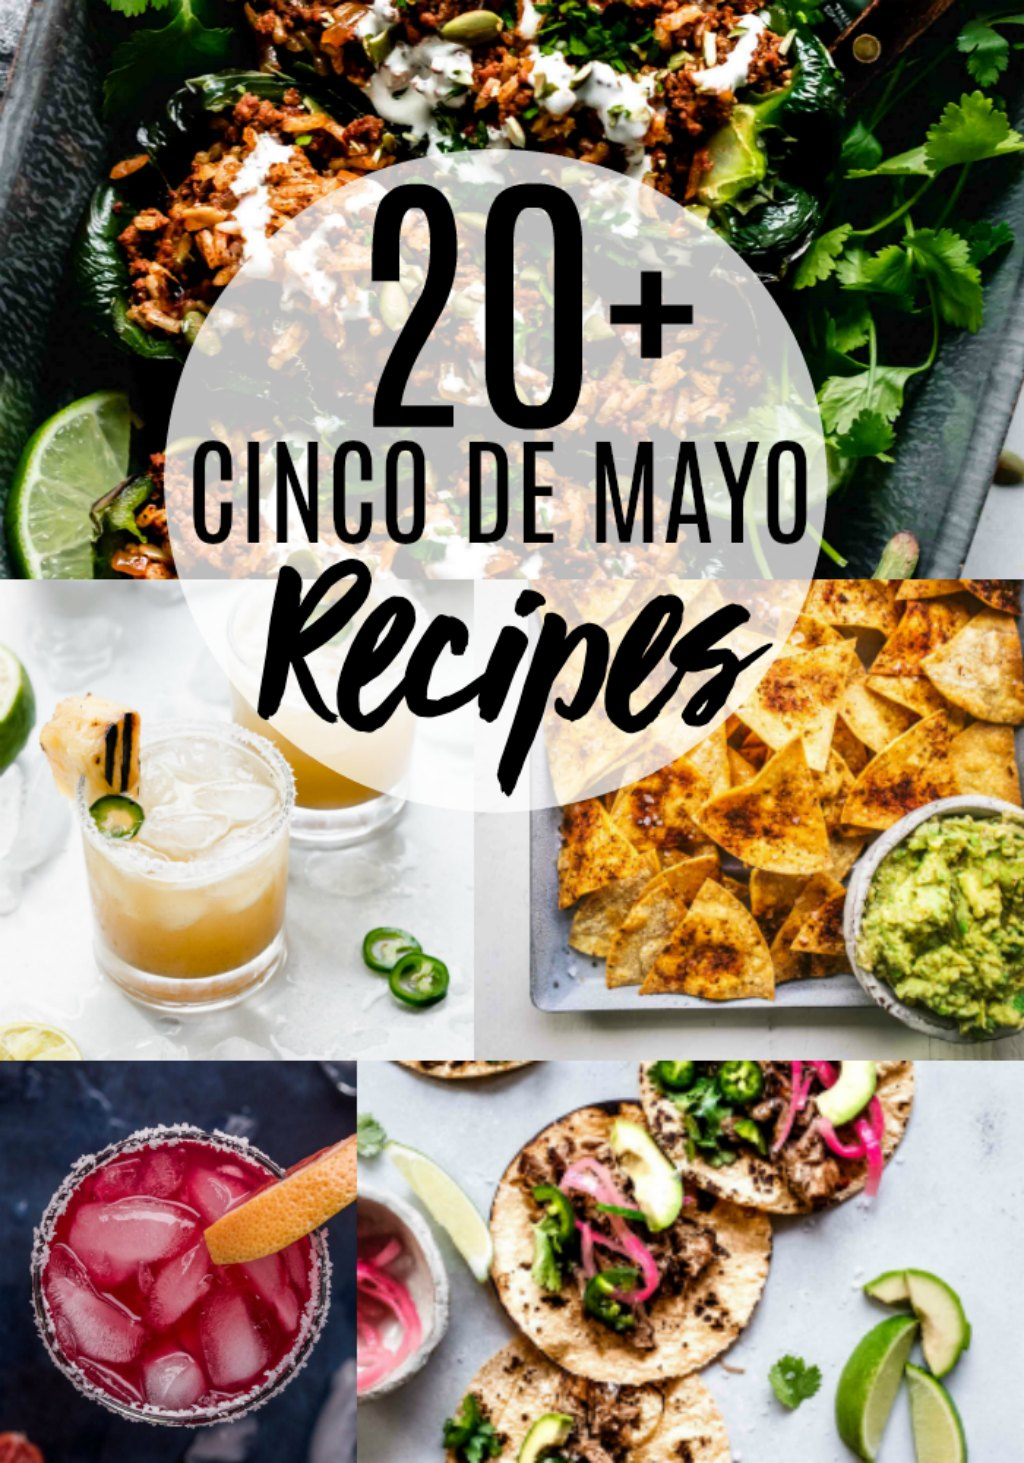 These Cinco de Mayo recipes will have you prepared for a festive holiday! 20+ Mexican food recipes including appetizers, tacos and margaritas. #cincodemayo #cincodemayorecipes #mexicanfood